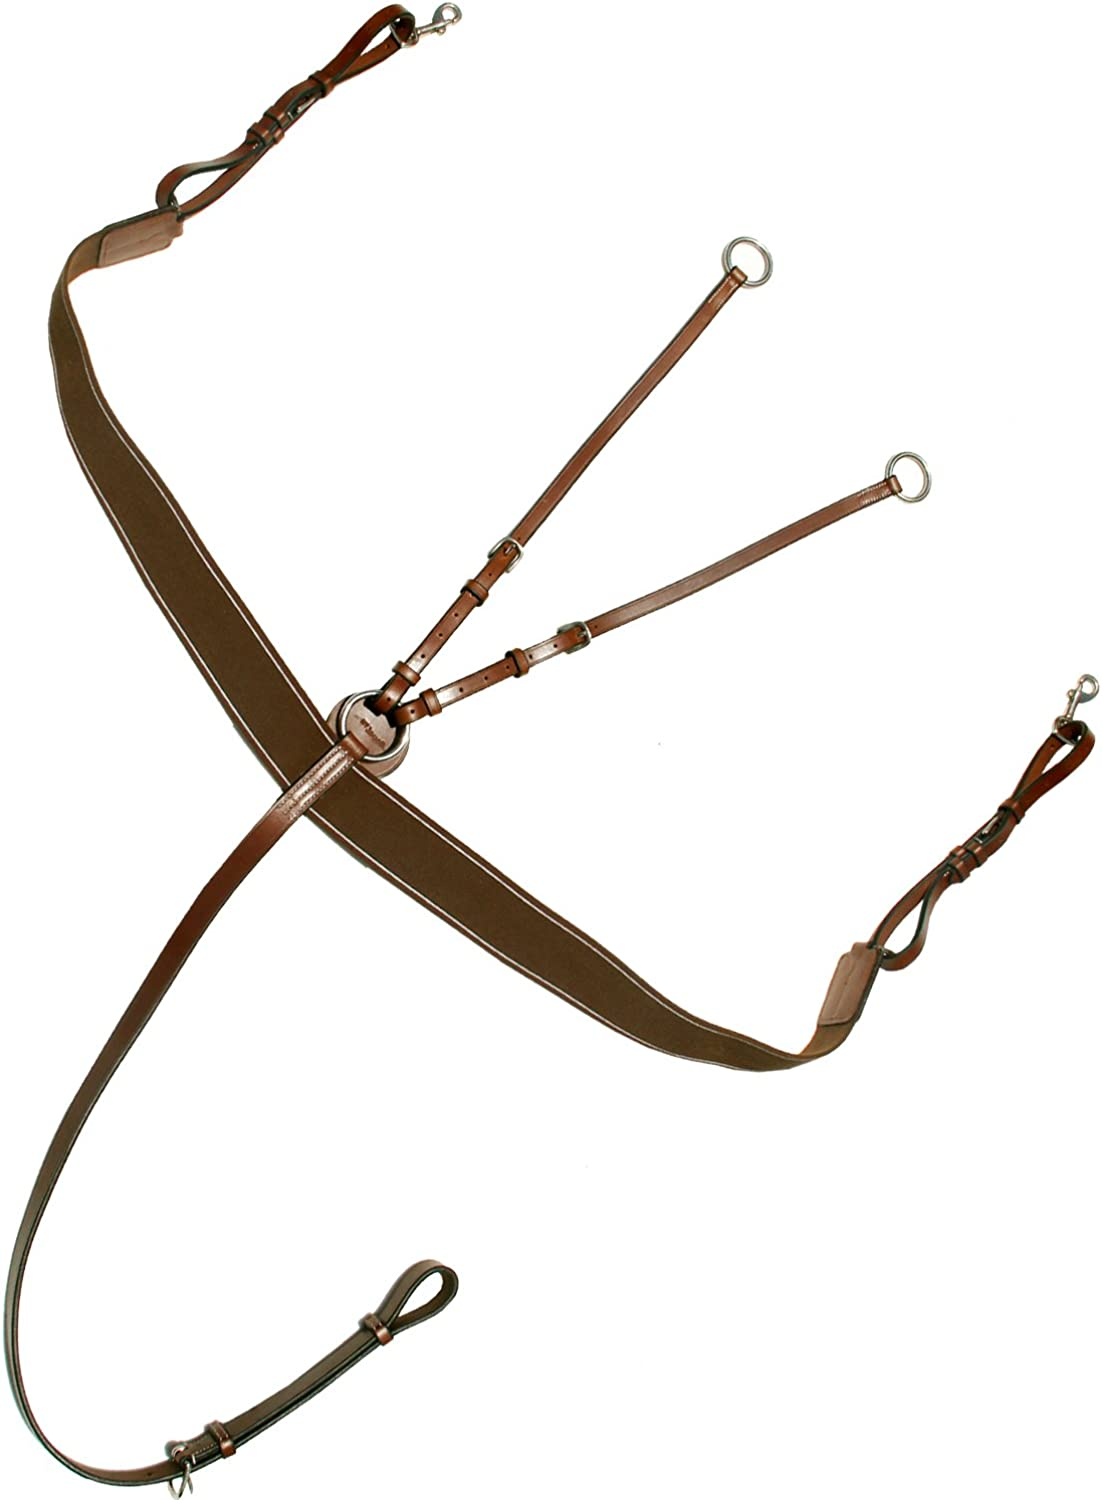 Exion Elastic Breast Plate with Girth Strap and Stainless Steel Buckles   Brown Elastic with Grey & Maroon Lines   English Horse Riding Equestrian Premium Tack   Conker  Pony